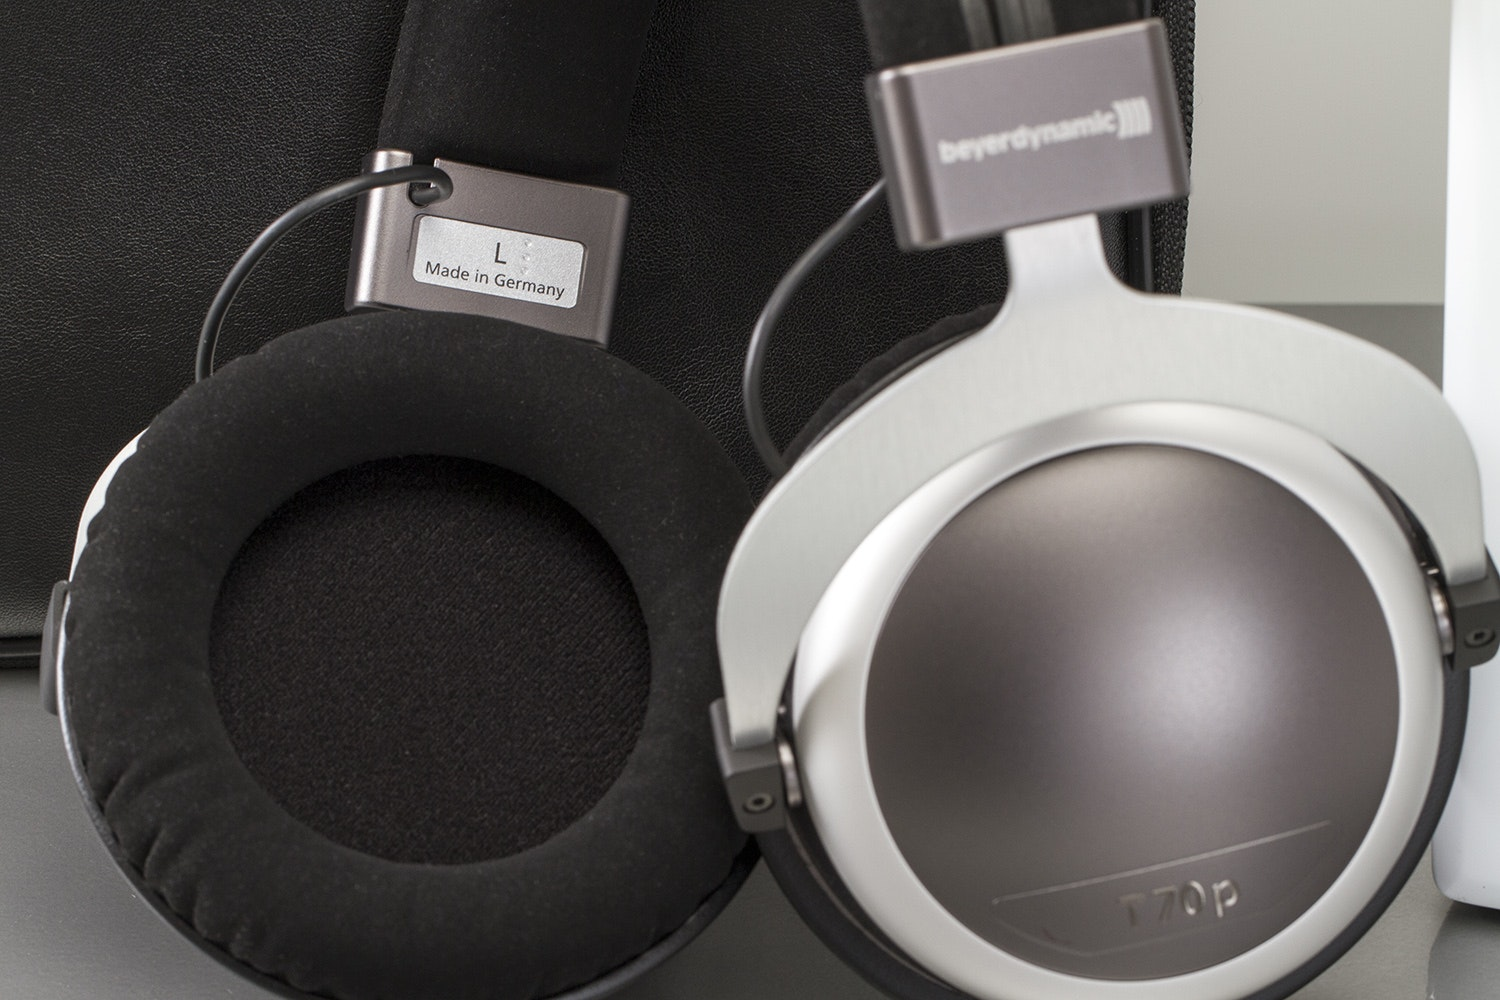 Beyerdynamic T70p Audiophile Headphone